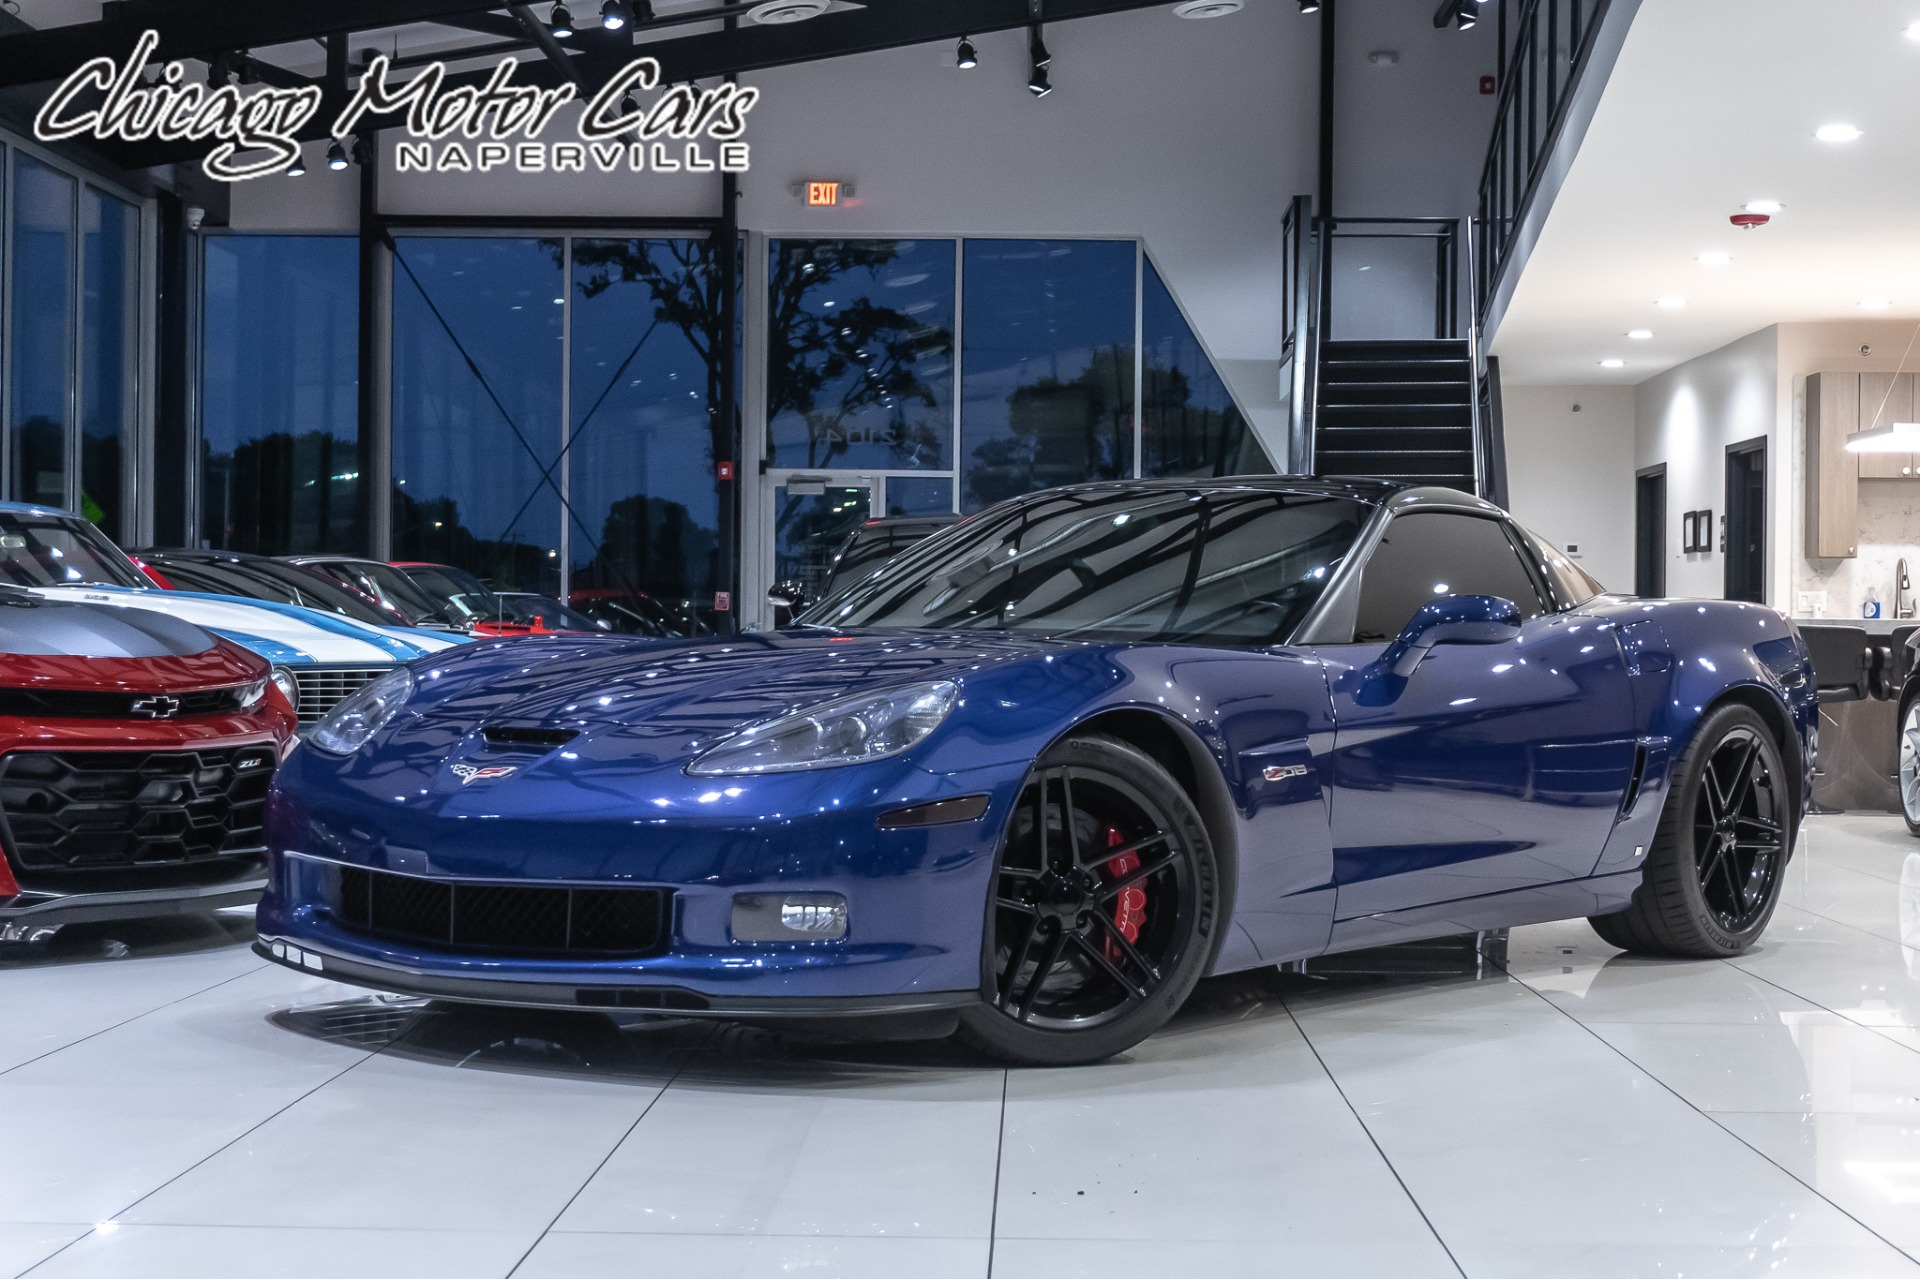 Used 2006 Chevrolet Corvette Z06 2lz 6 Speed Manual For Sale Special Pricing Chicago Motor Cars Stock 17288